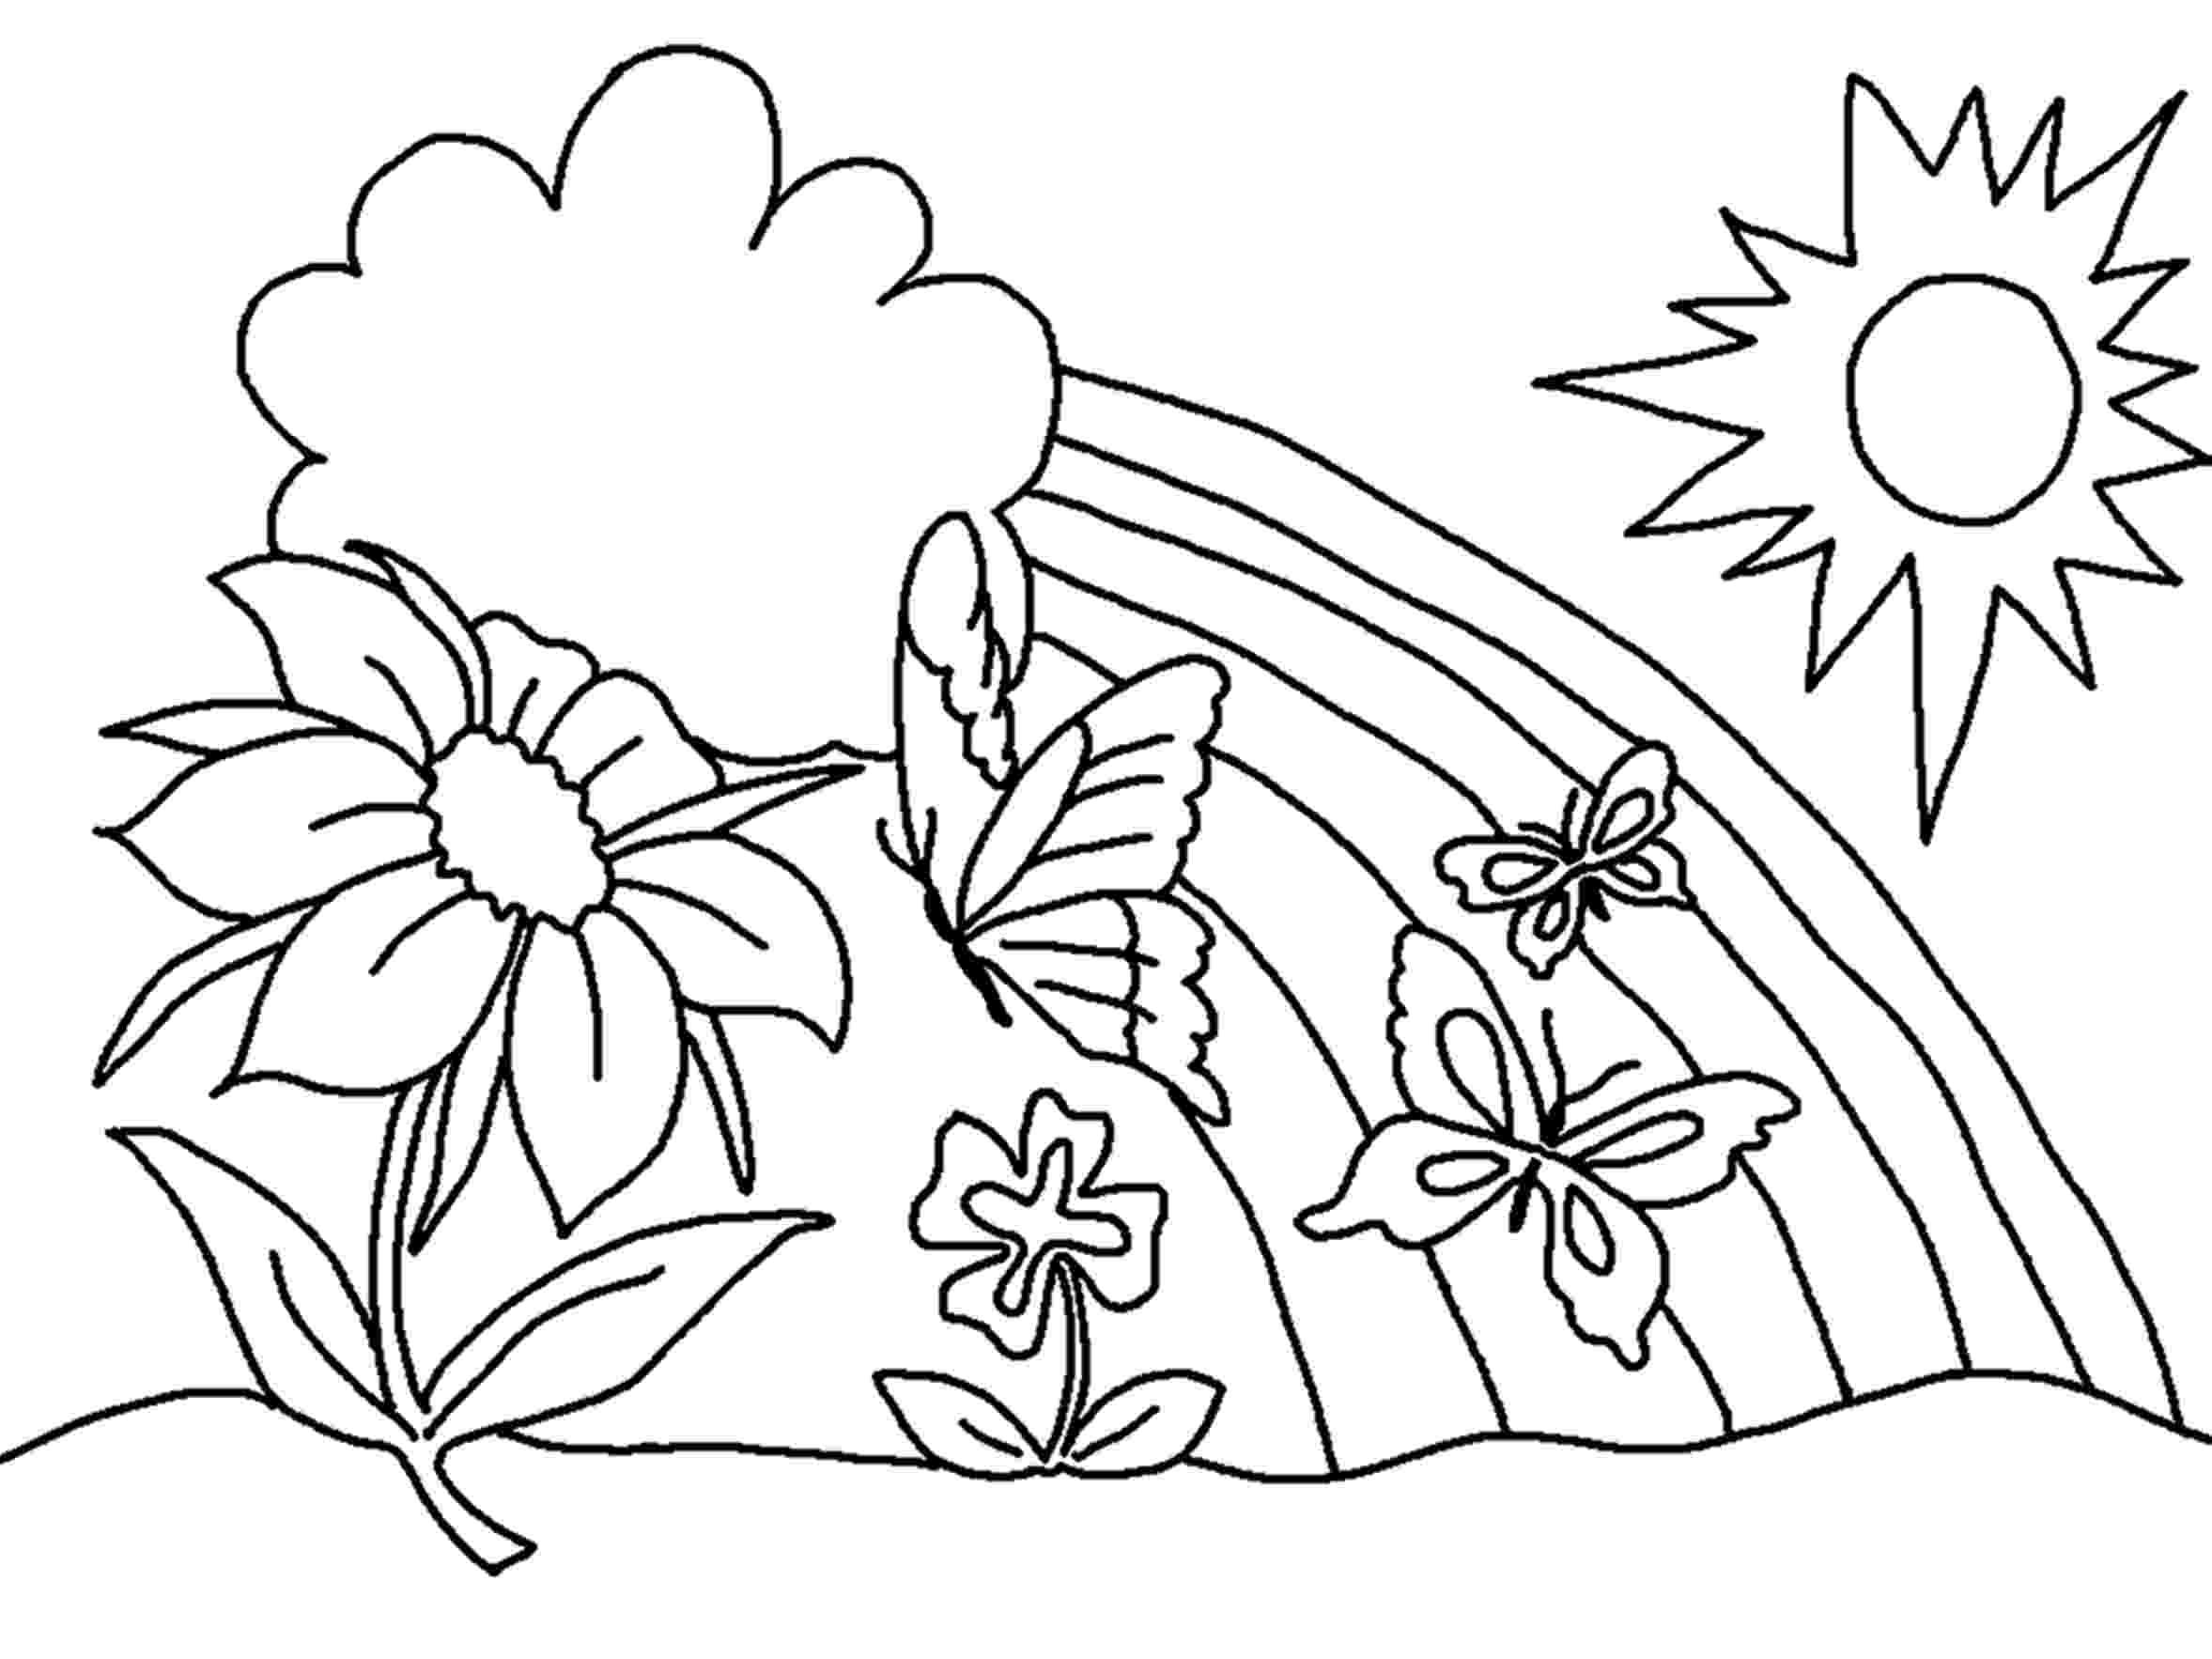 coloring flower pictures simple flower coloring pages getcoloringpagescom coloring pictures flower